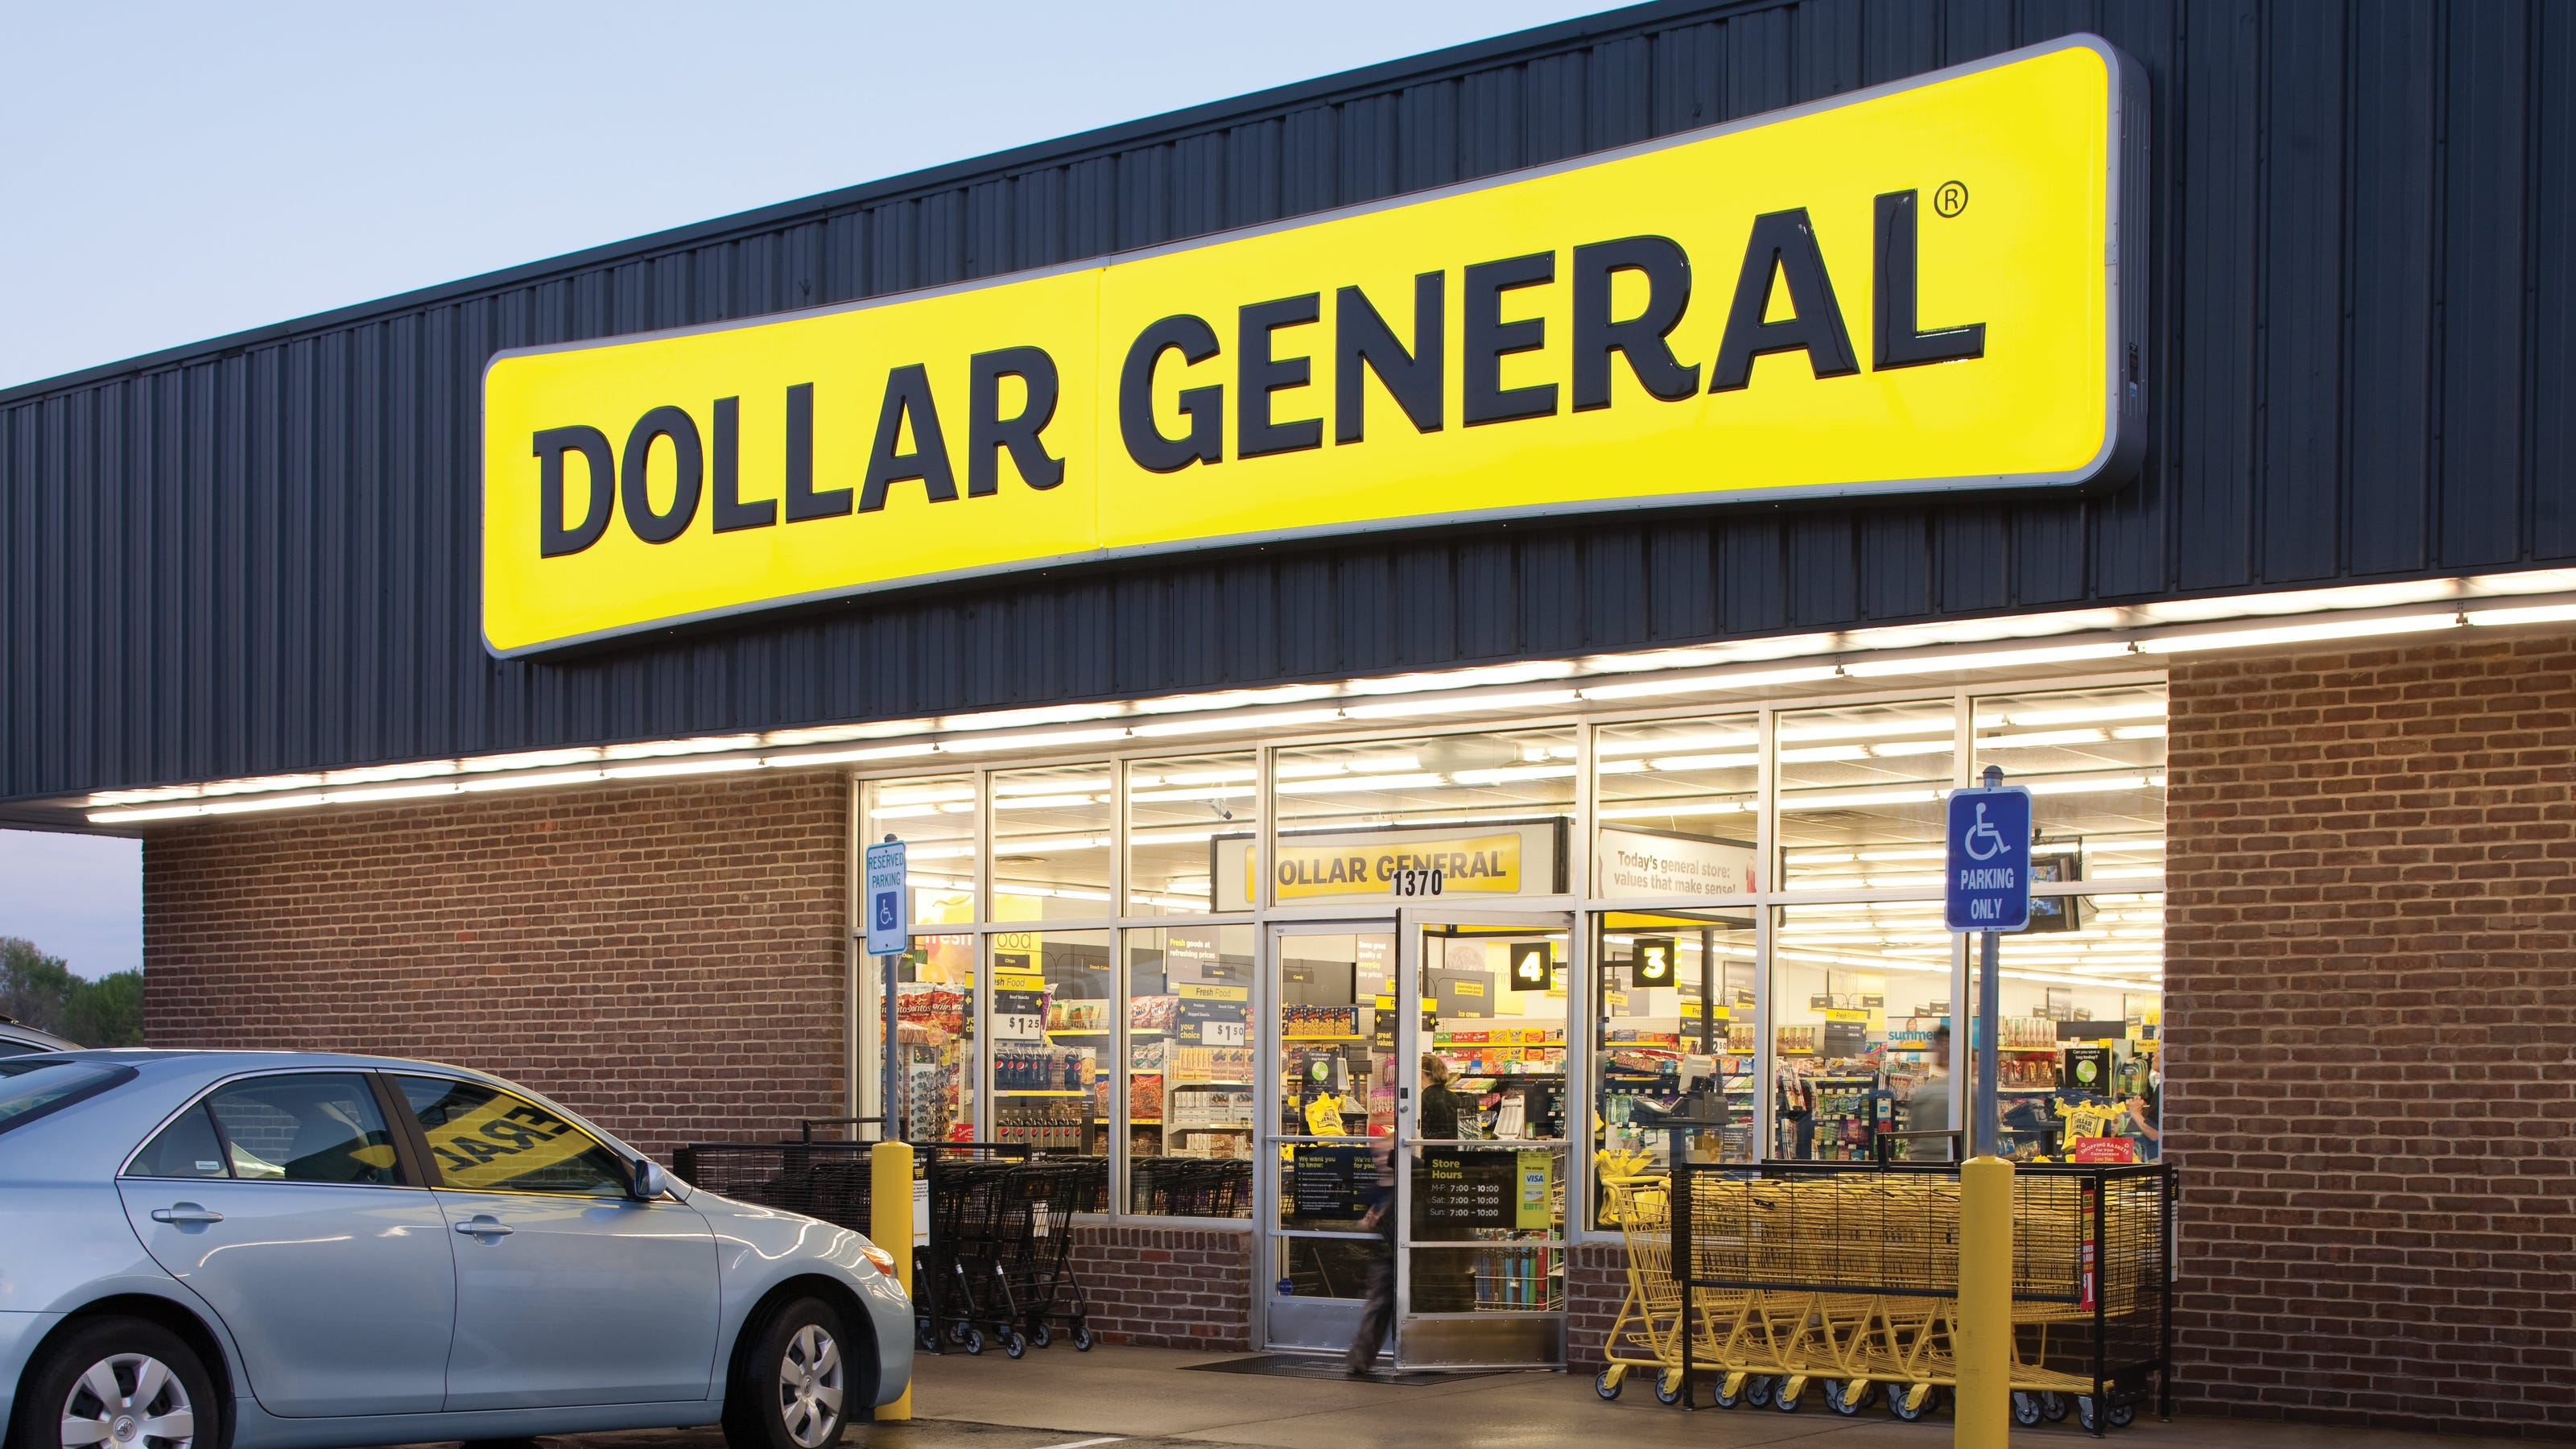 Is Dollar General Open On Christmas 2021 Vaccine Dollar General Cdc In Talks On Covid Partnership